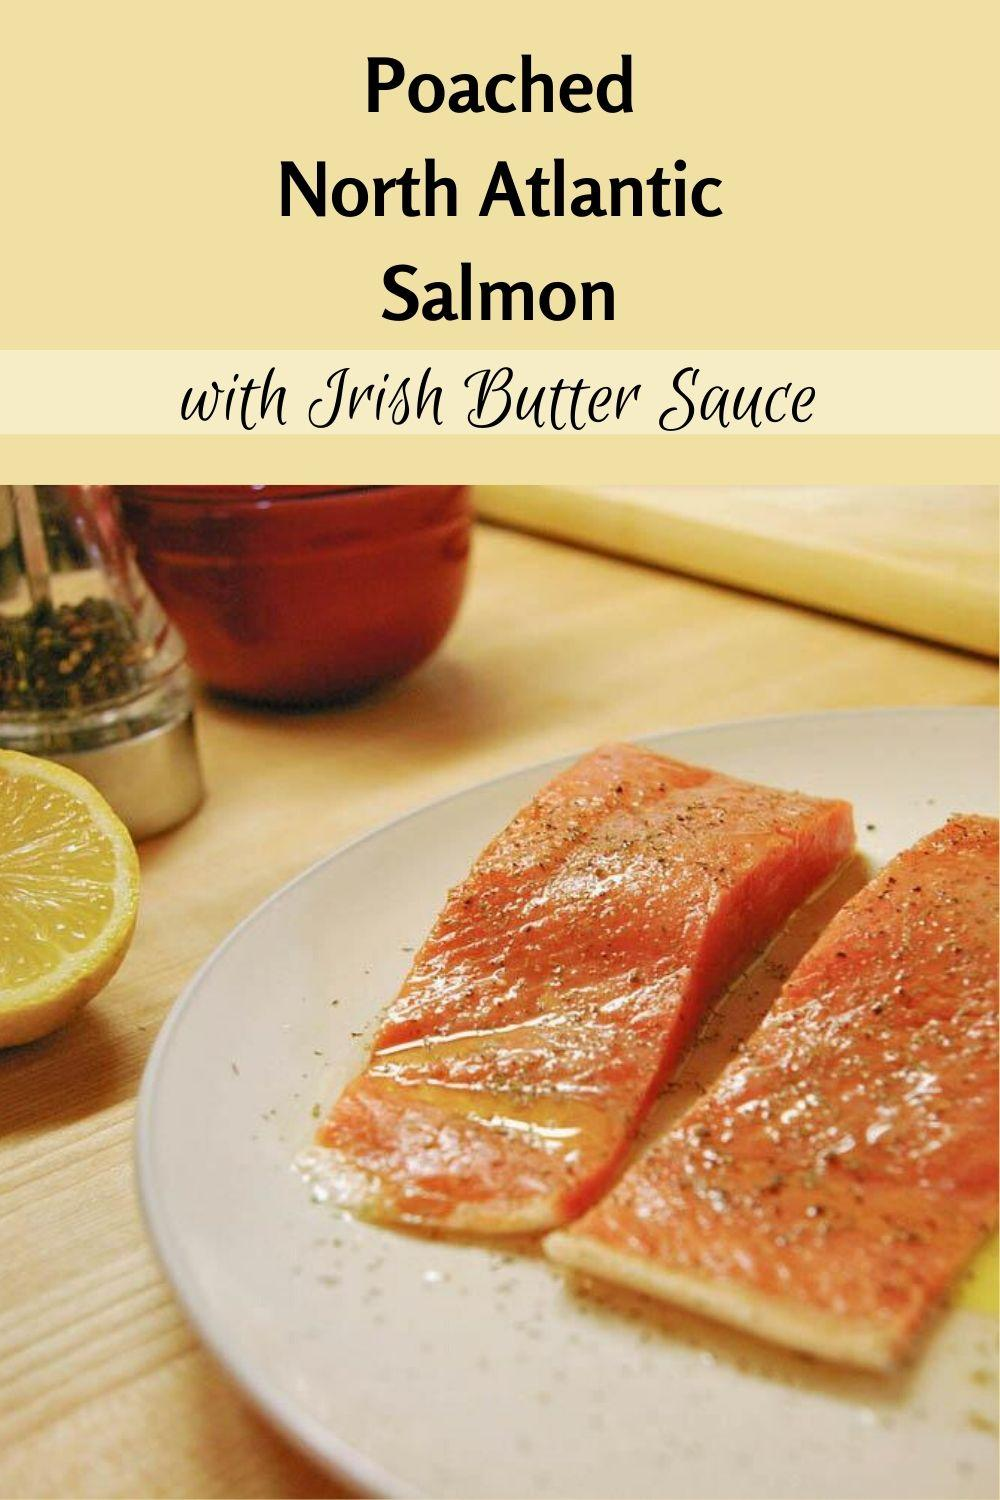 North Atlantic Poached Salmon with Irish Butter Sauce